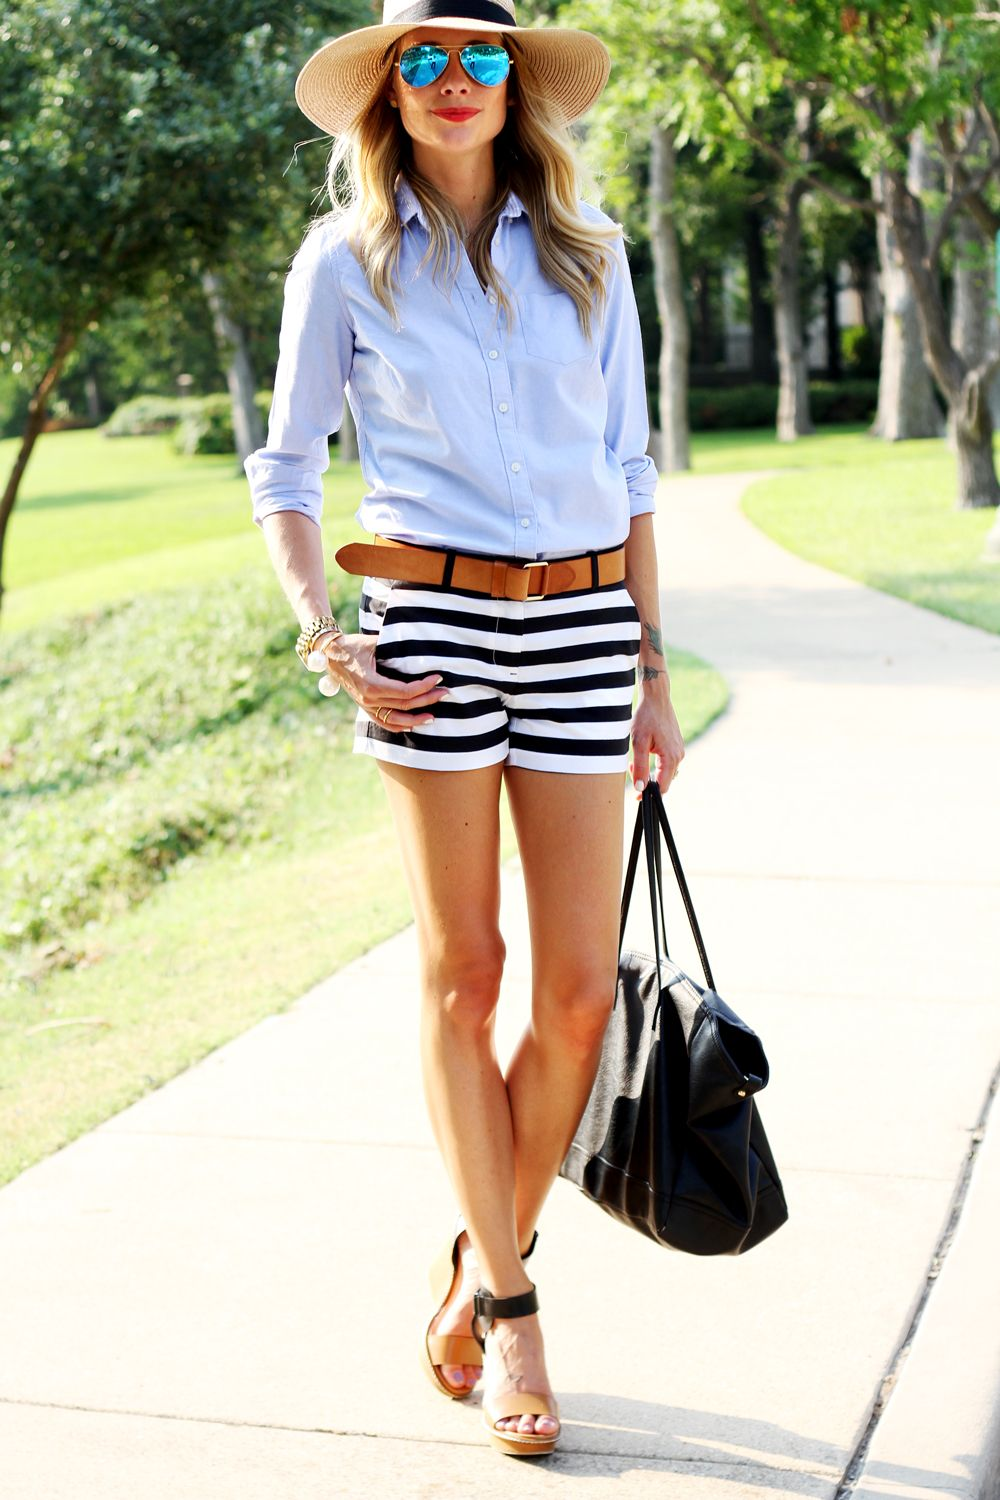 Gap Black & White Stripe Shorts, Blue Shirt, Floppy Hat ...